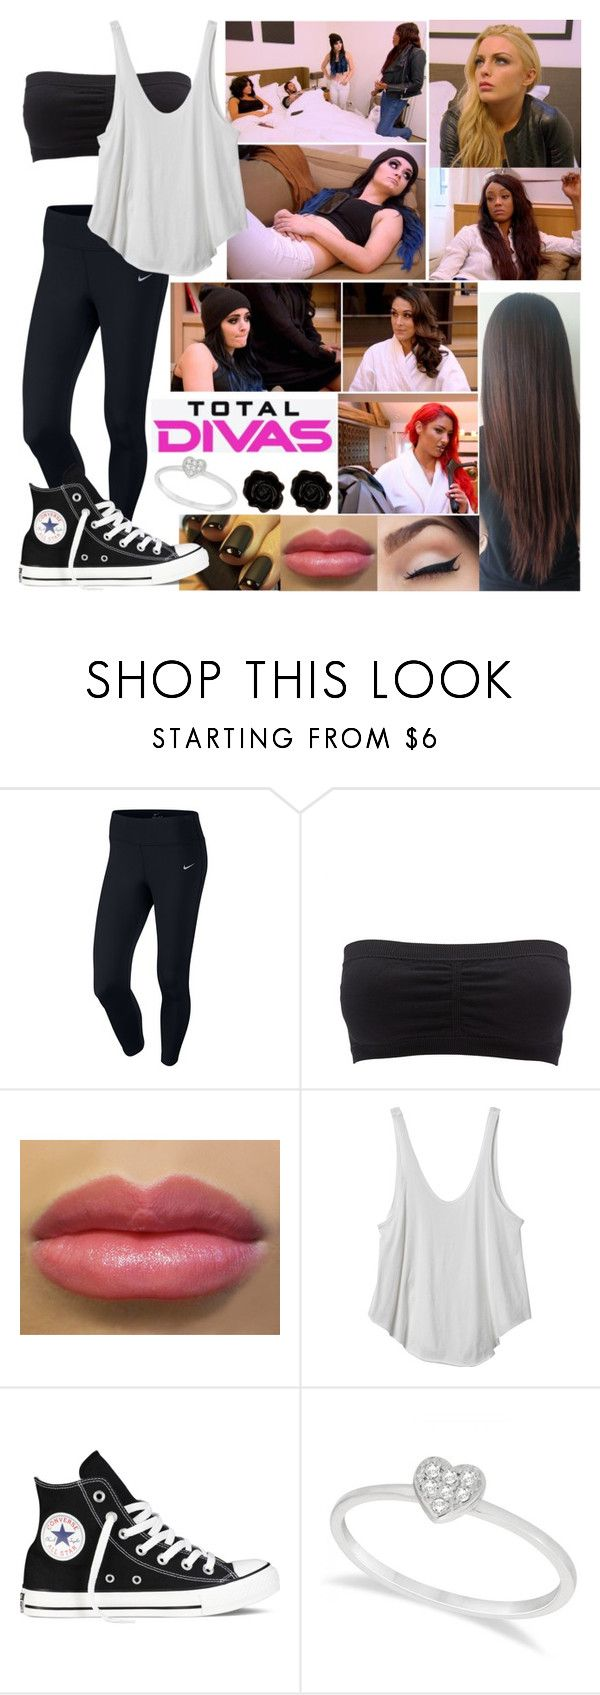 """Total Divas: Miscommunication"" by samantha-vance ❤ liked on Polyvore featuring NIKE, Charlotte Russe, RVCA, Converse, Allurez and Fornash"